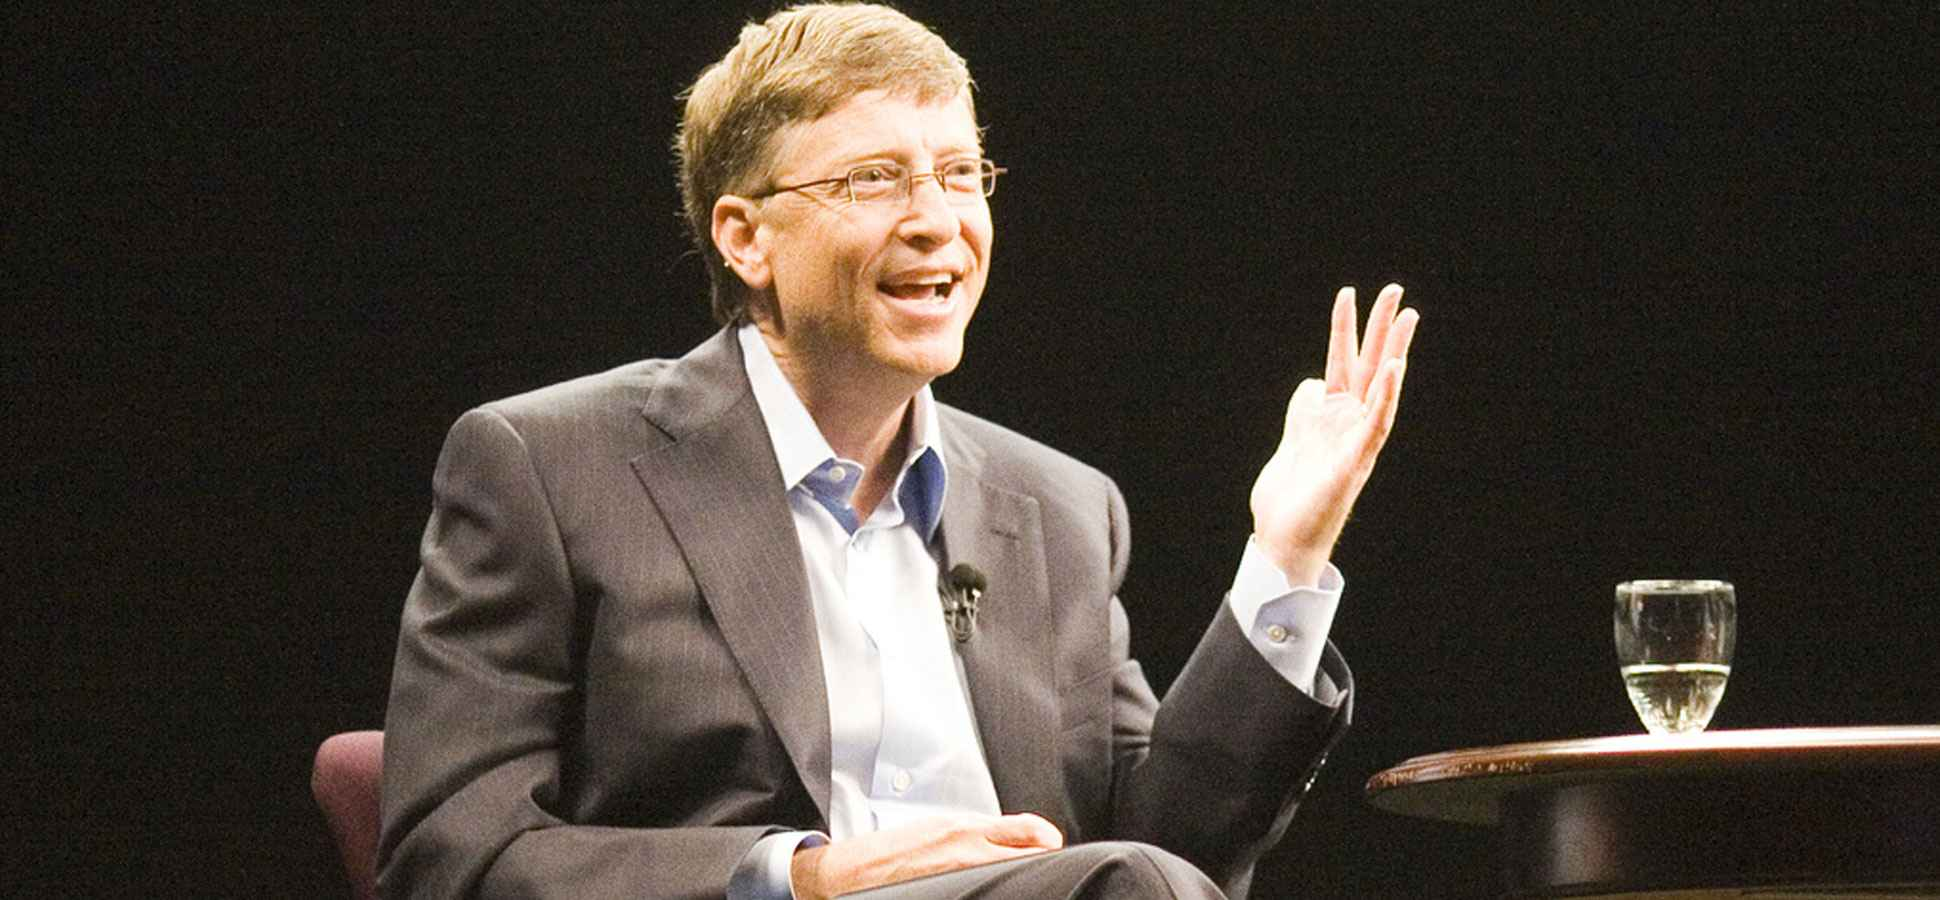 Bill Gates on Failure, Philanthropy, and His New Role at Microsoft